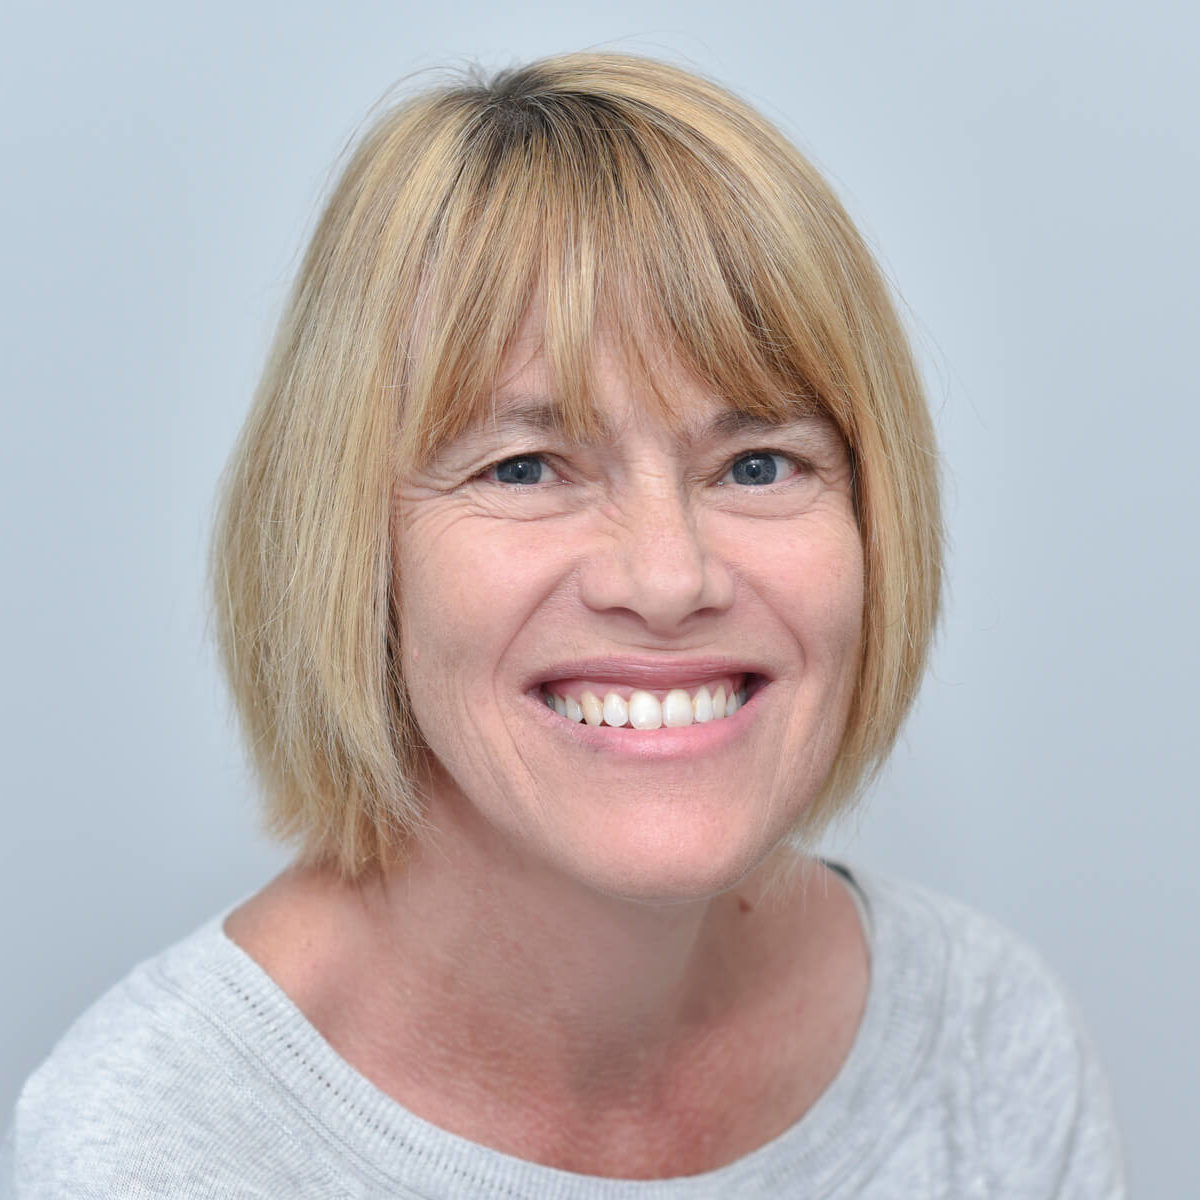 Sally Colour, Psychodynamic Counsellor, The Therapy Clinic